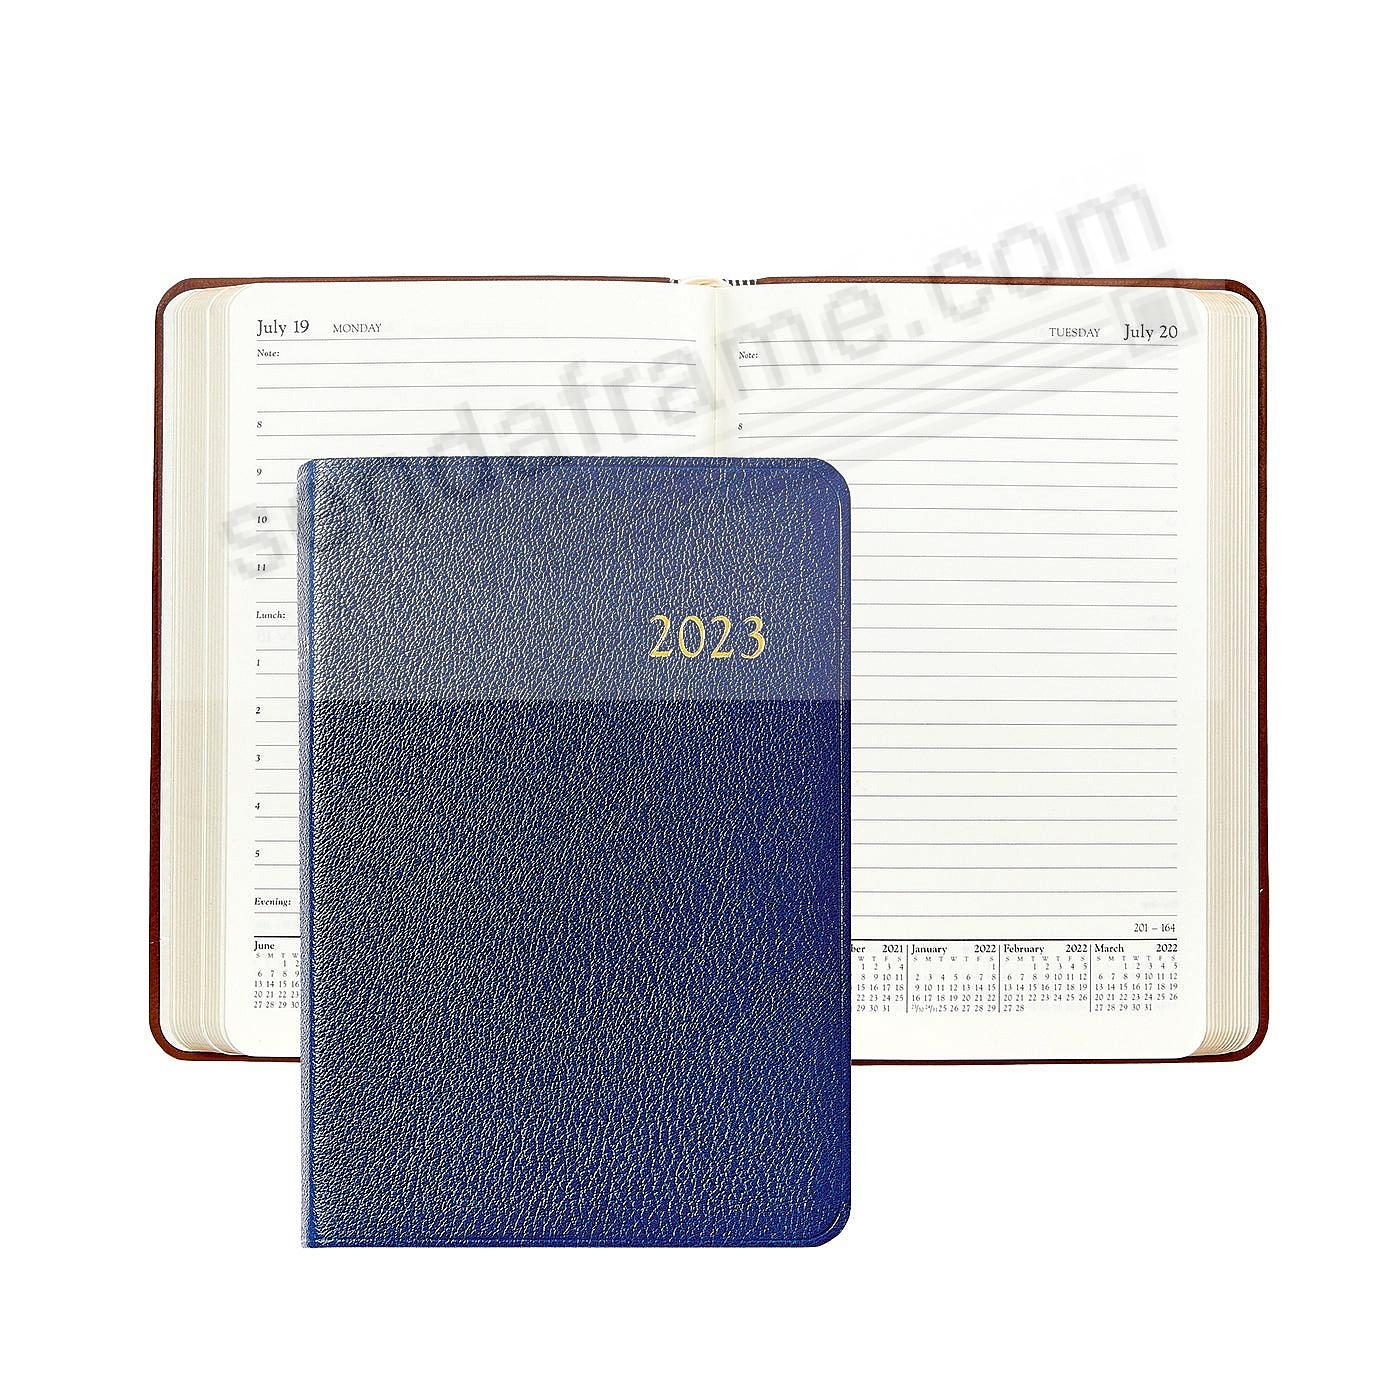 2021 INDIGO-BLUE Goatskin leather Daily 8-in Journal by Graphic Image™